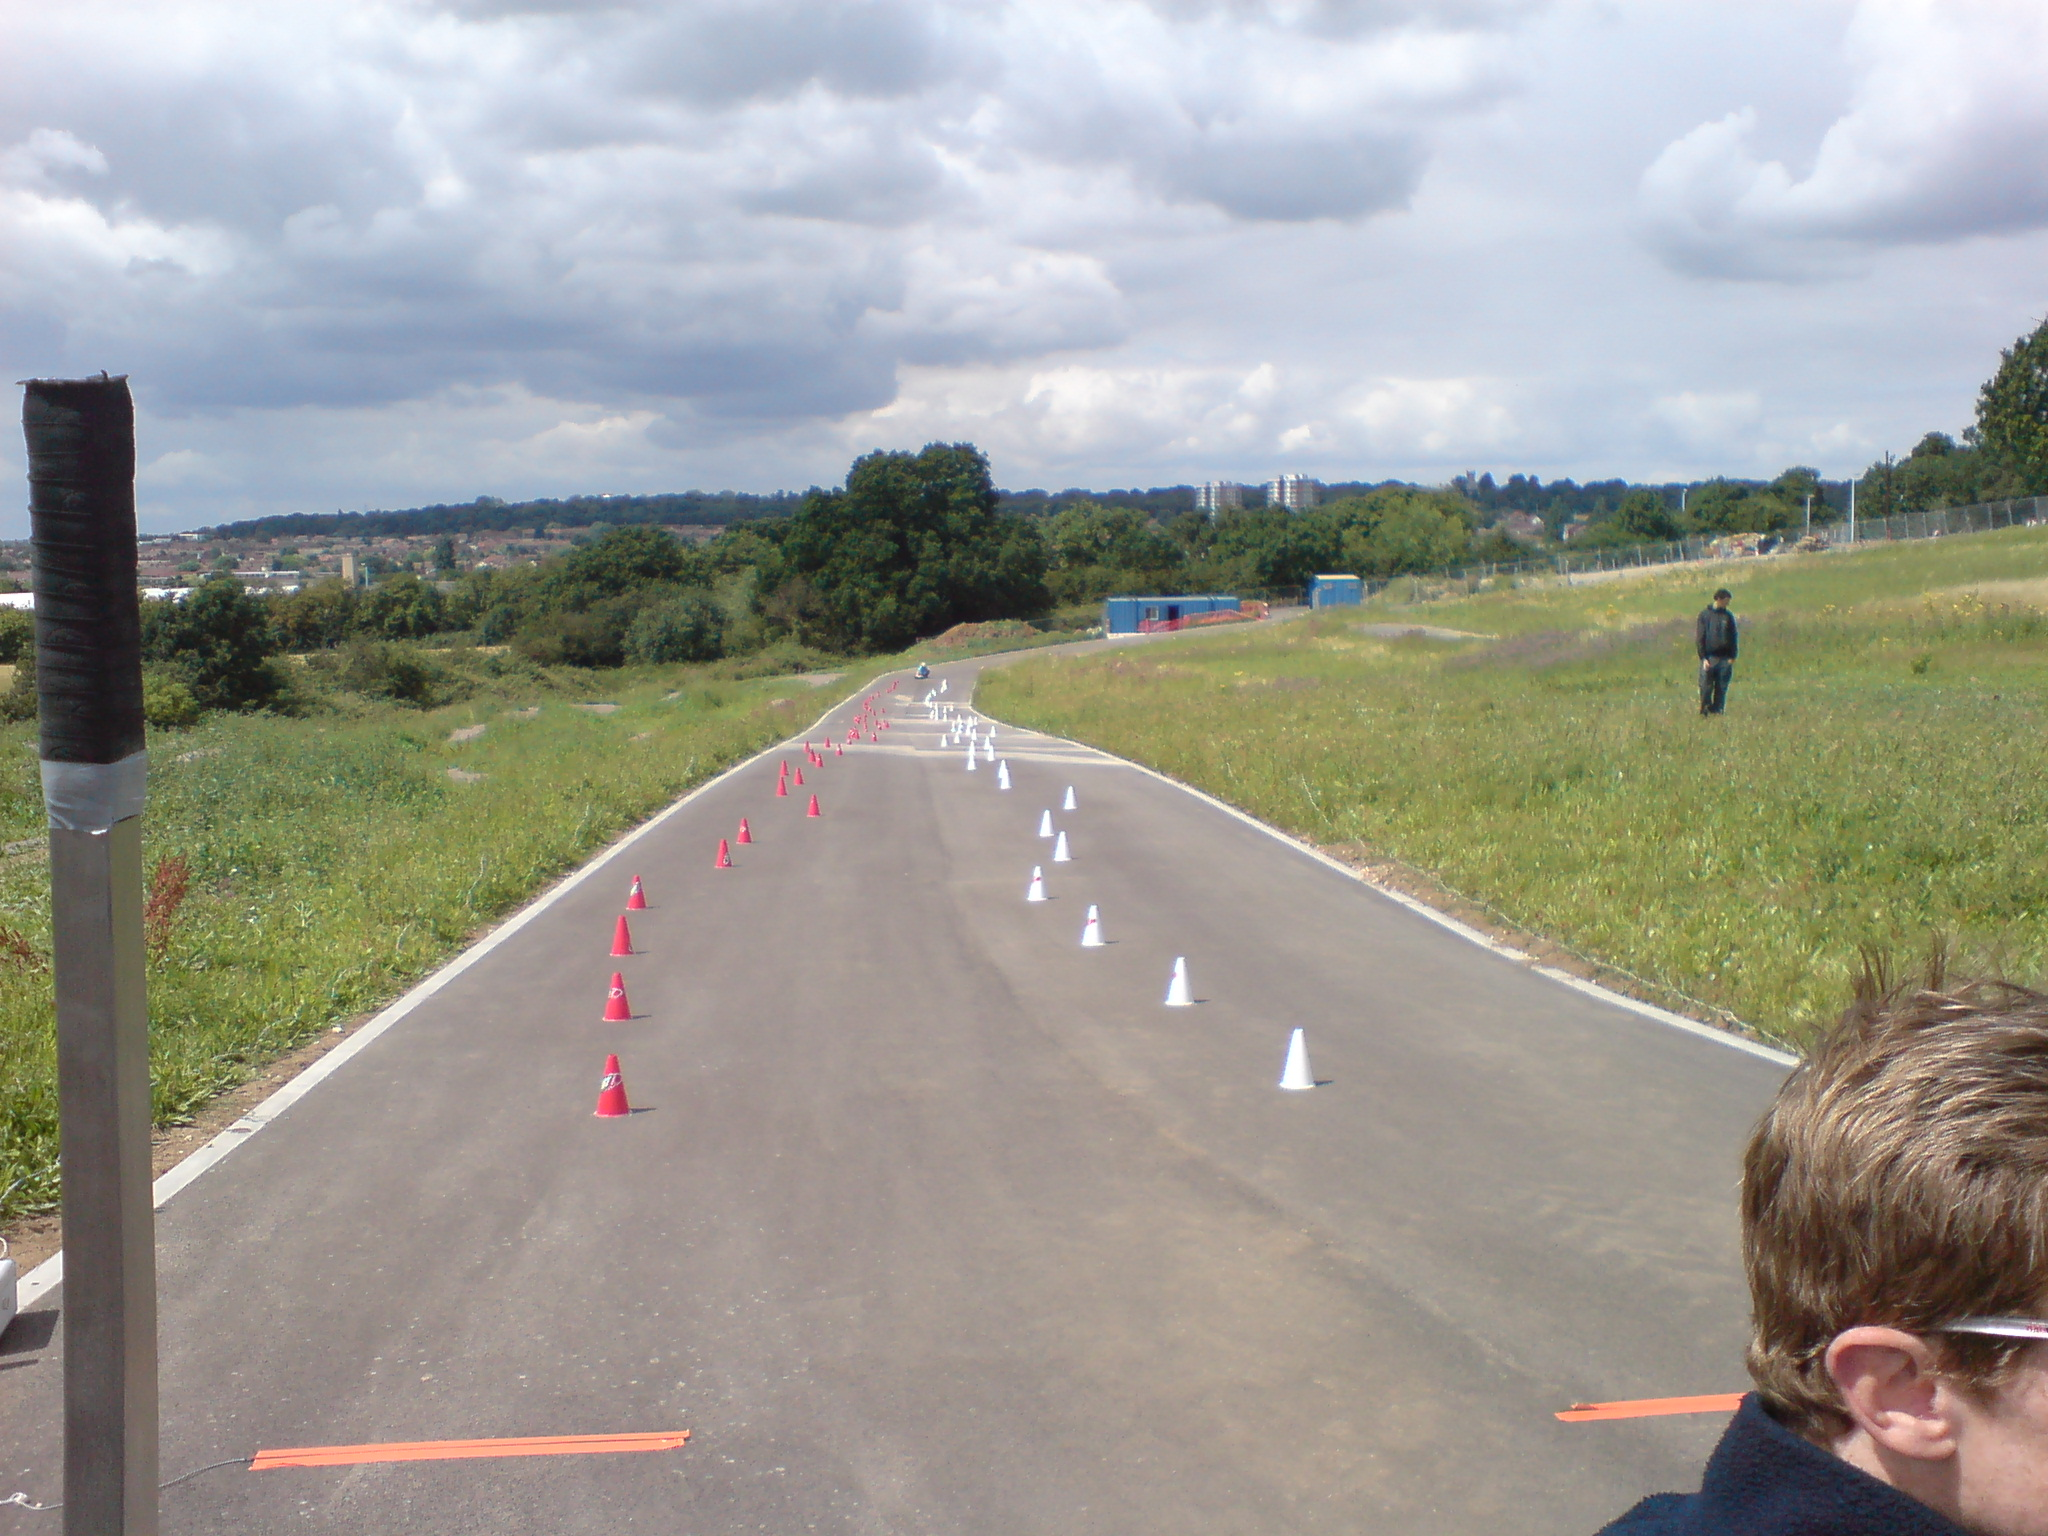 The first ever course laid down at Hog Hill on 20th July 2008. The centre was still being completed. The only facilities on site were the two blue portaloos you can see at the bottom of the hill, everything else was still very much under construction.